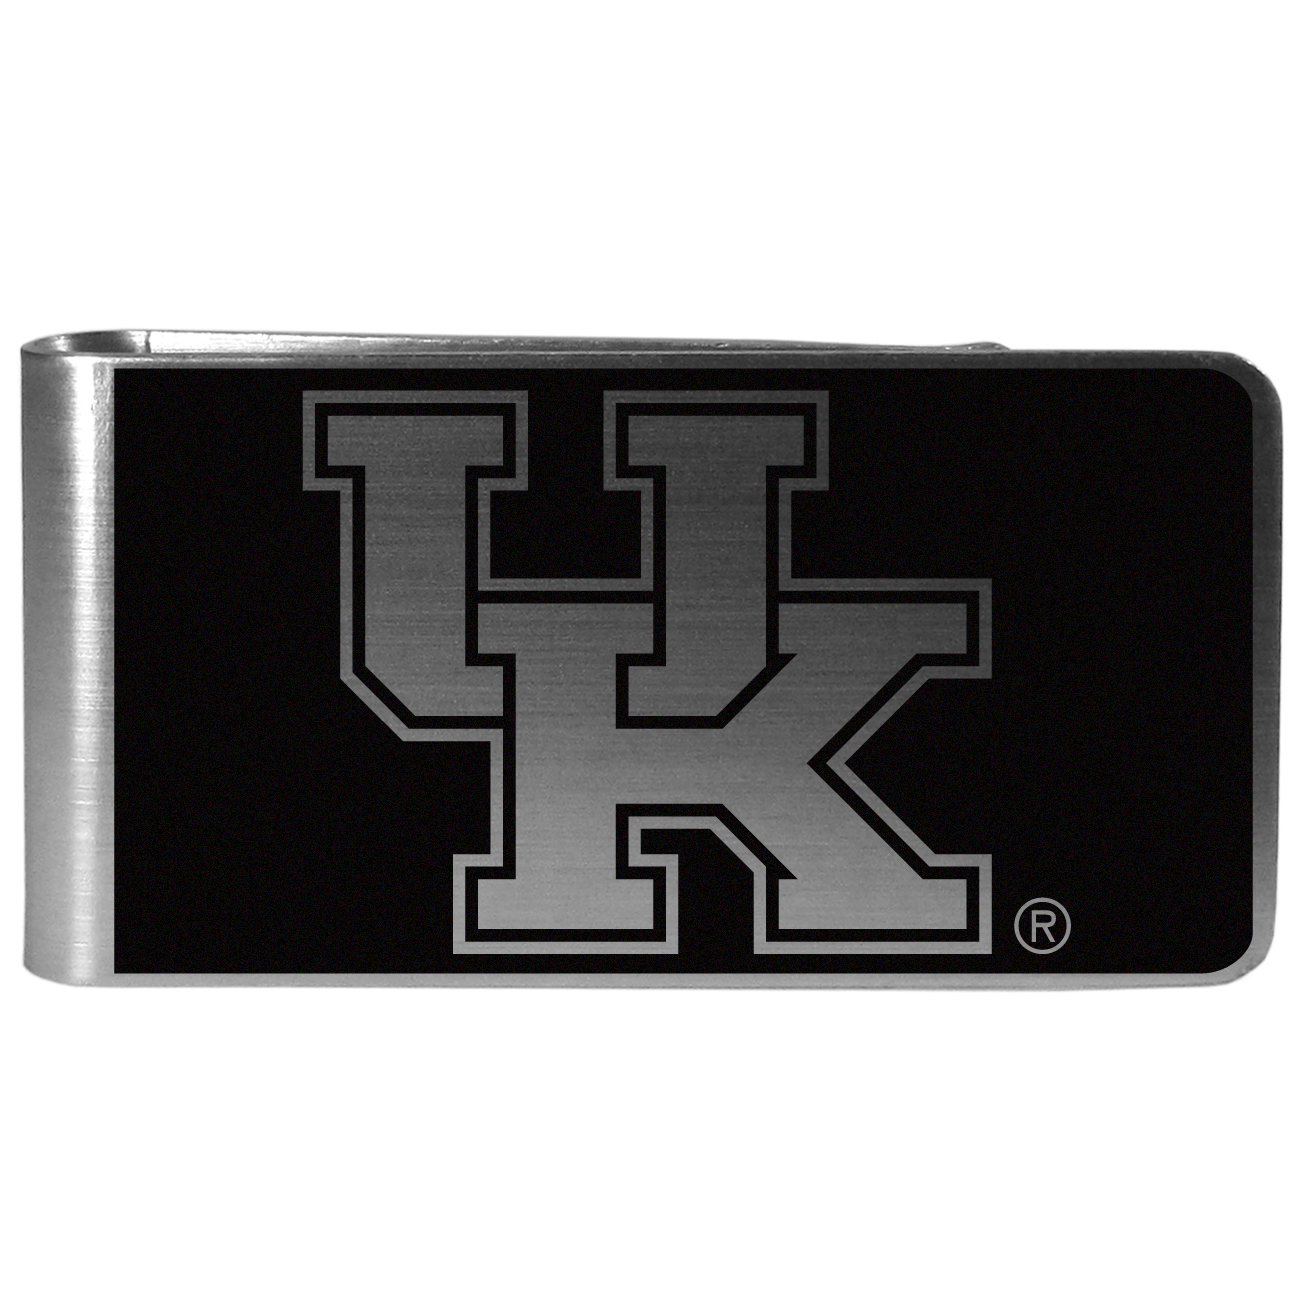 Kentucky Wildcats Black and Steel Money Clip - Our monochromatic steel money clips have a classic style and superior quality. The strong, steel clip has a black overlay of the Kentucky Wildcats logo over the brushed metal finish creating a stylish men's fashion accessory that would make any fan proud.